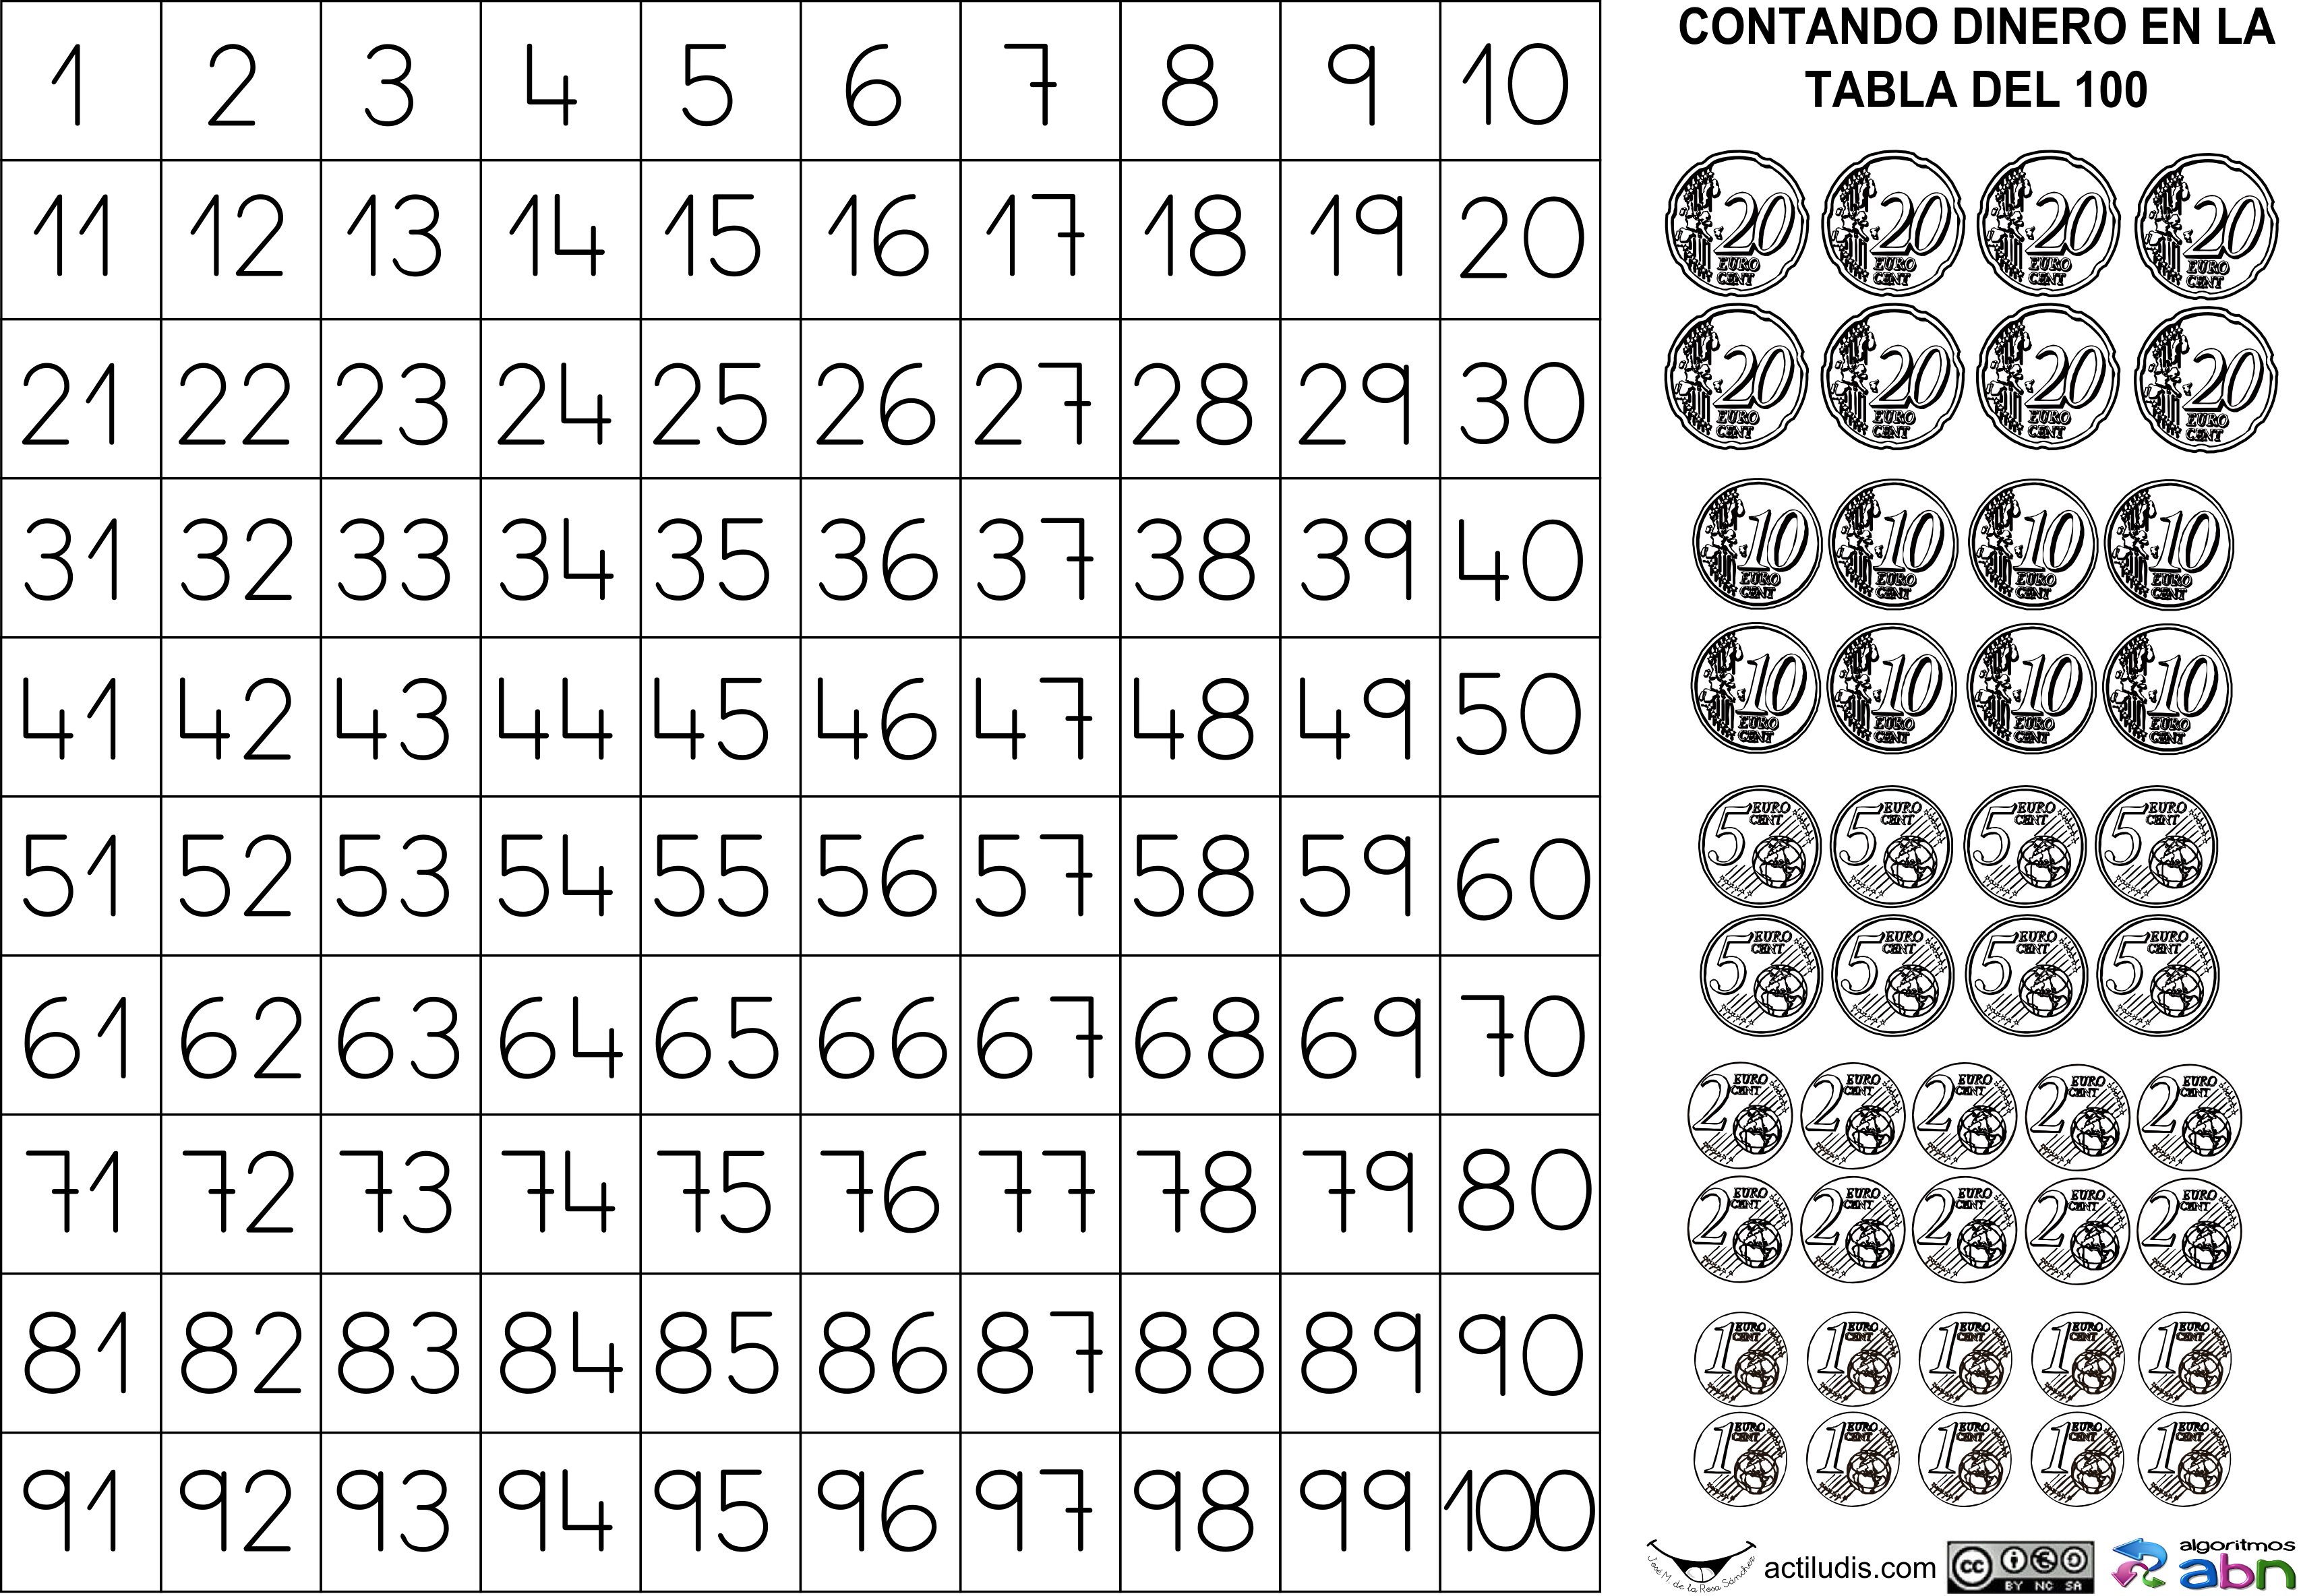 Tabla de numeros del 1 al 100 imagui for Table de 100